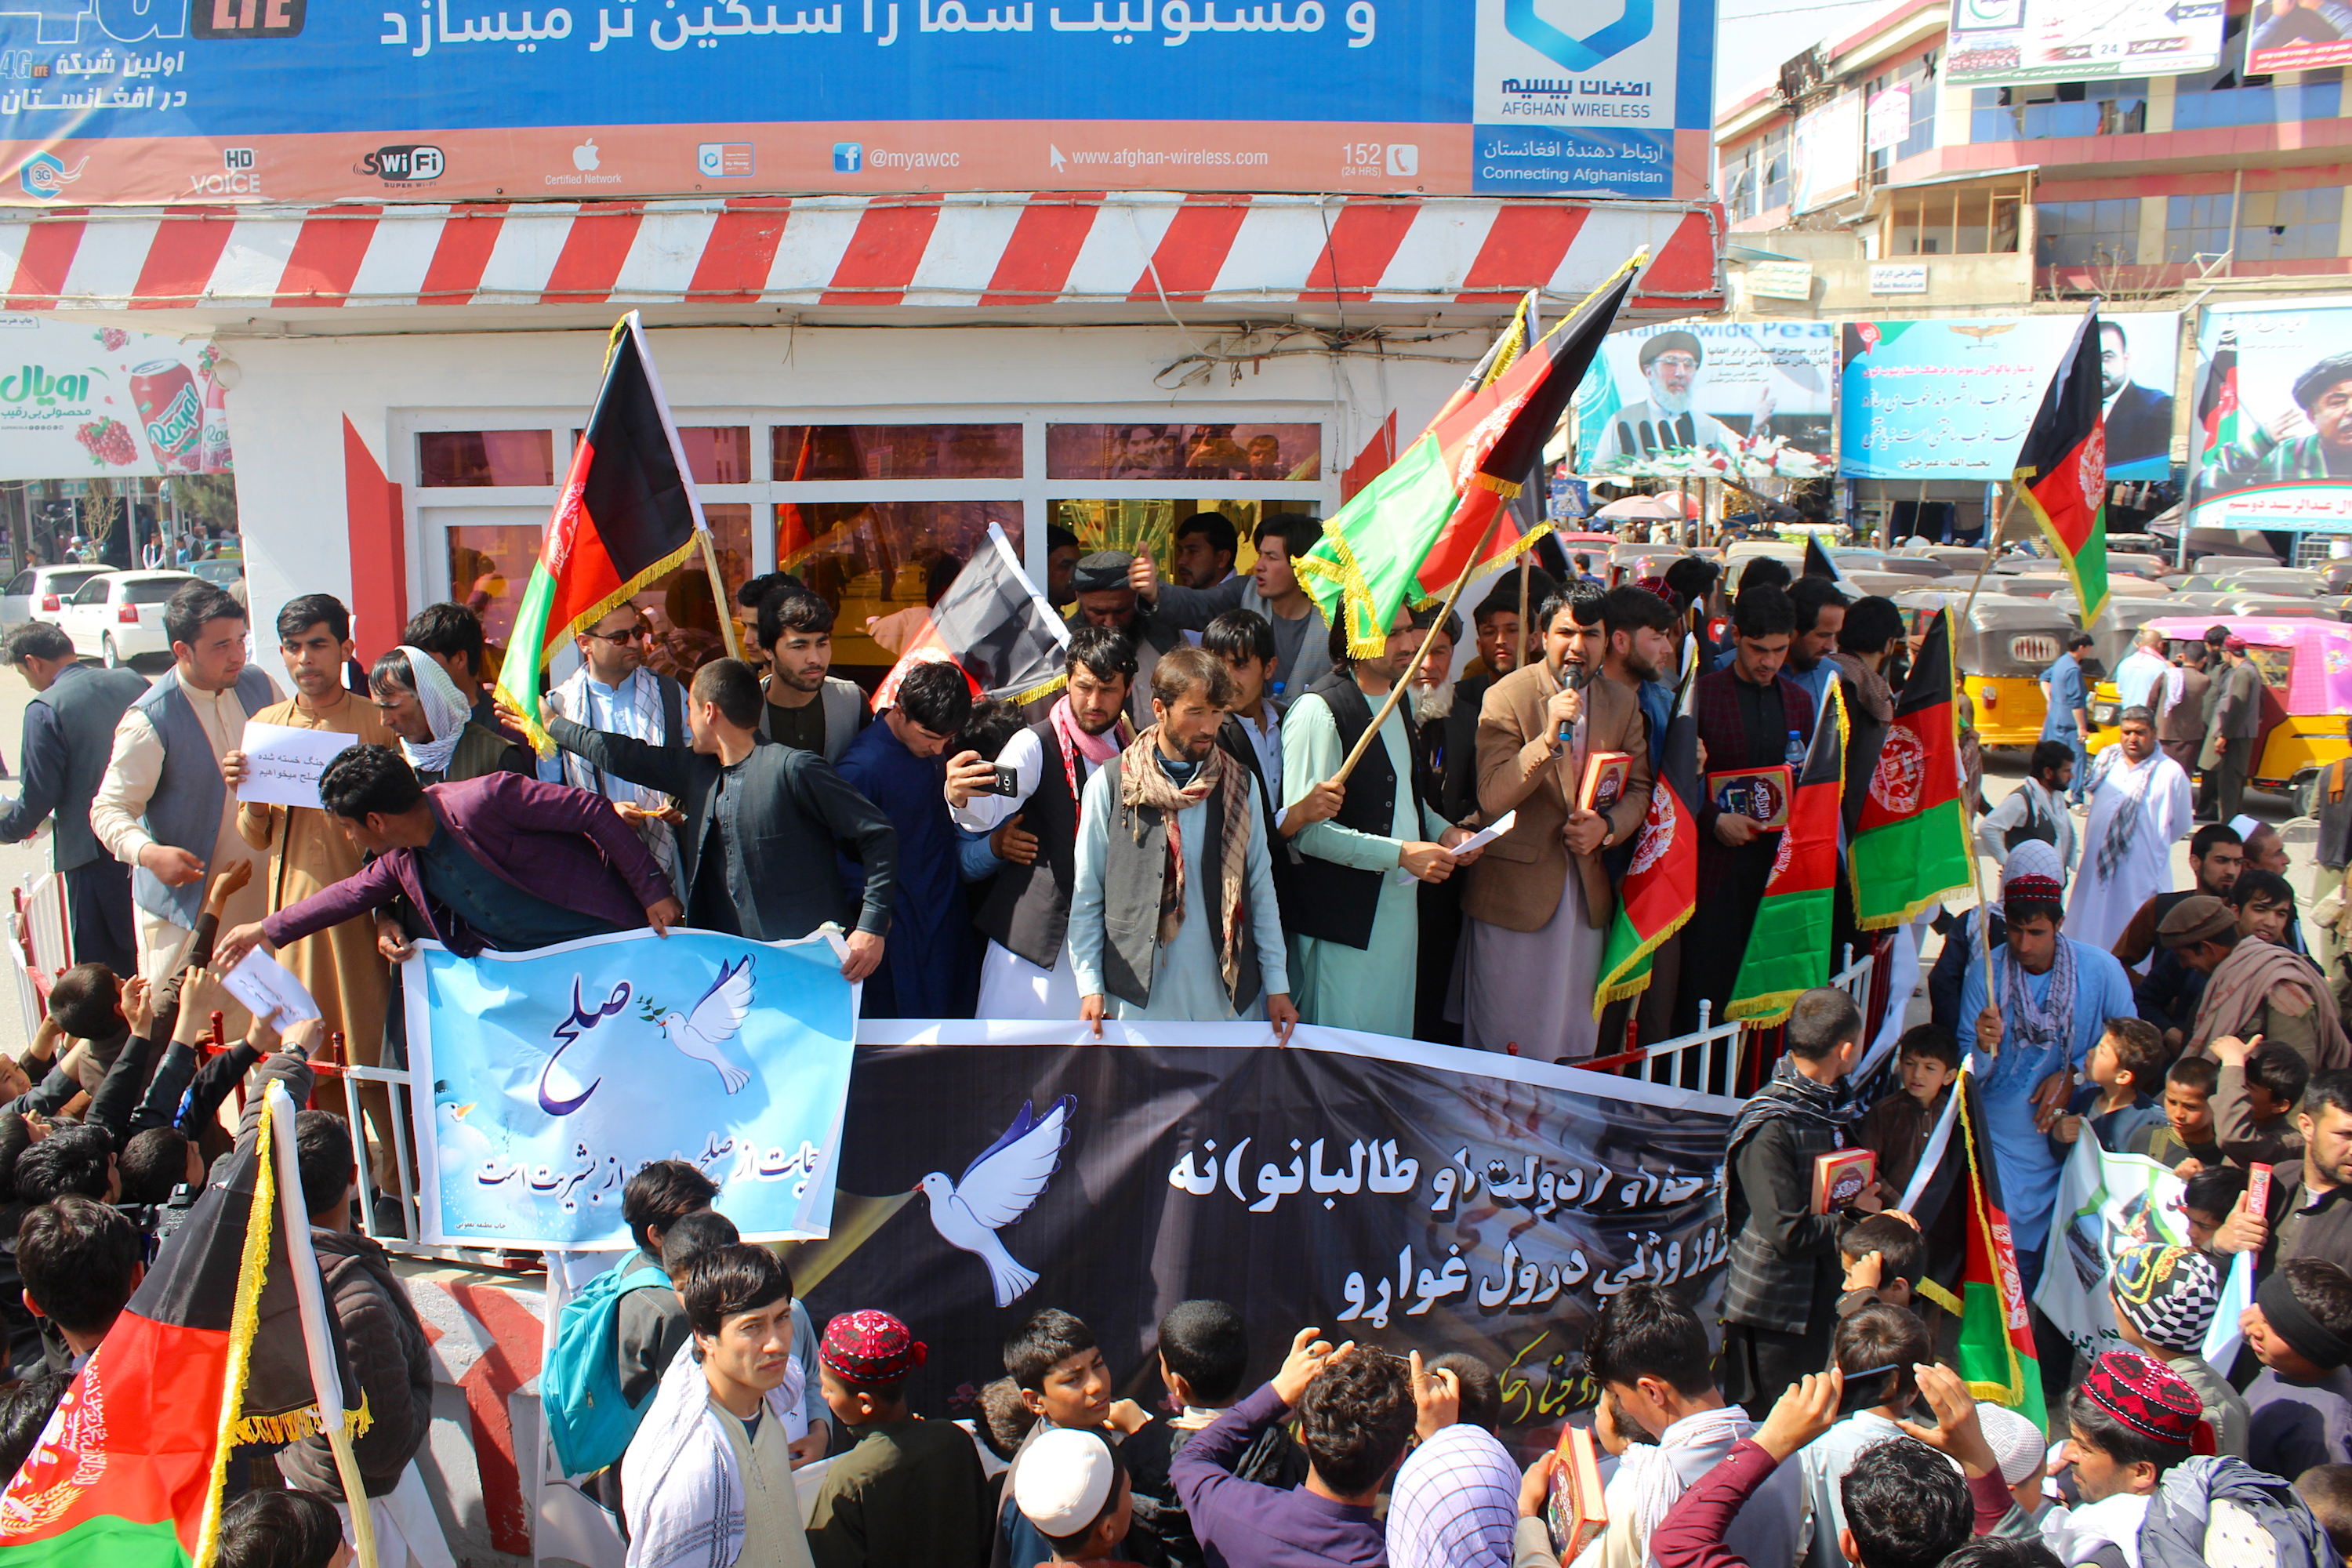 Armed with copies of the Koran, hundreds of Kunduz residents rally for peace